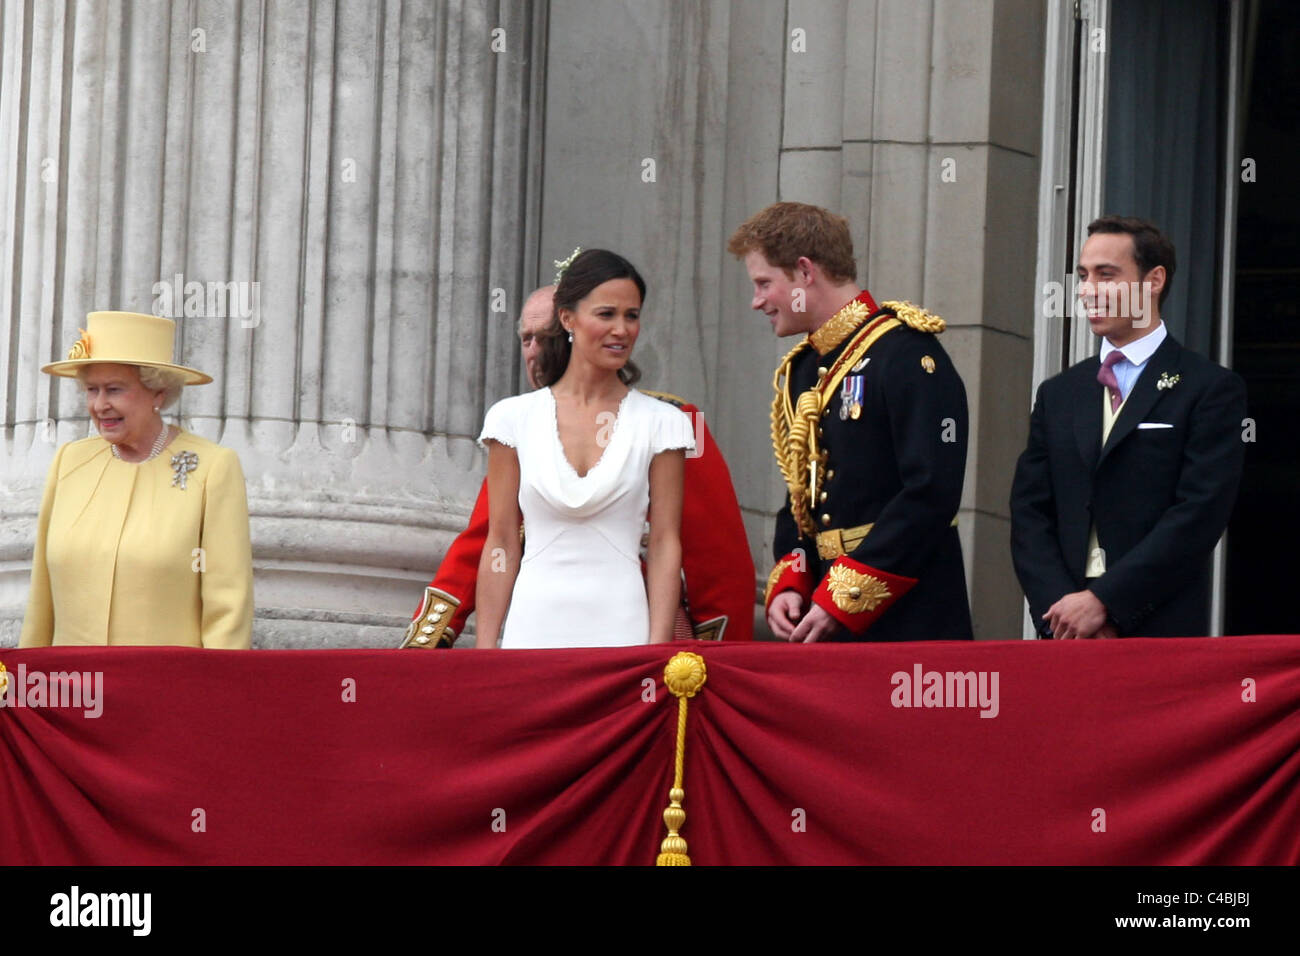 PIPPA MIDDLETON AND PRINCE HARRY AT THE ROYAL WEDDING OF PRINCE WILLIAM AND KATE MIDDLETON Stock Photo